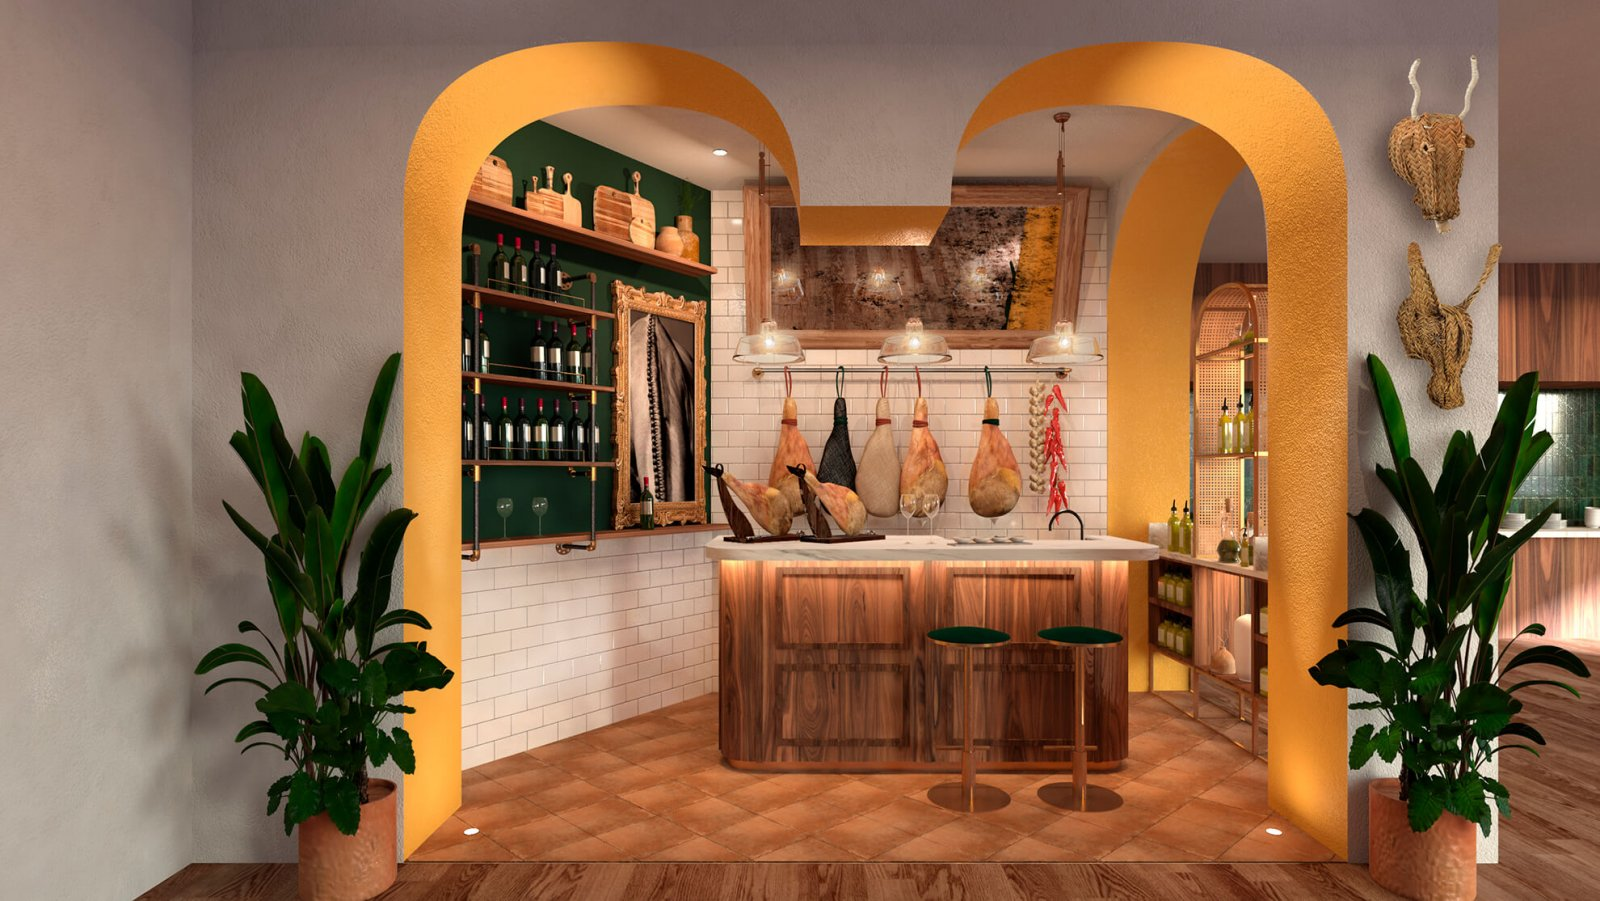 Another view of the common areas with wine and Serrano ham of the Sotogrande